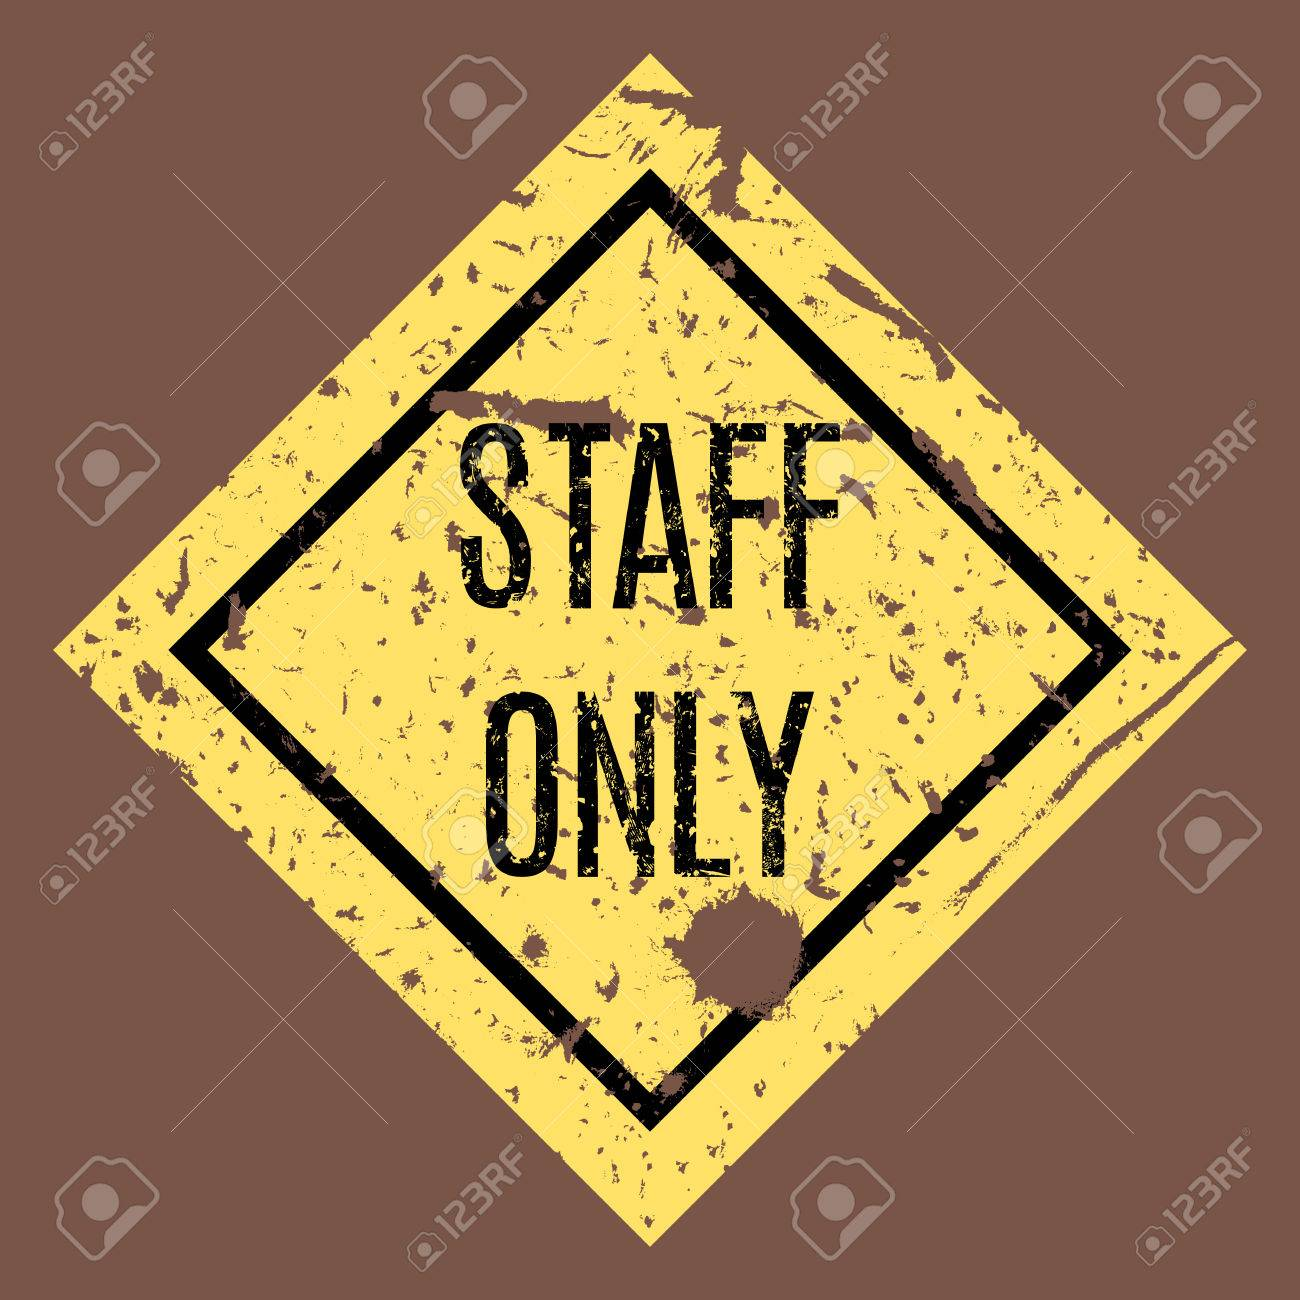 Staff only grungy sticker restricted area